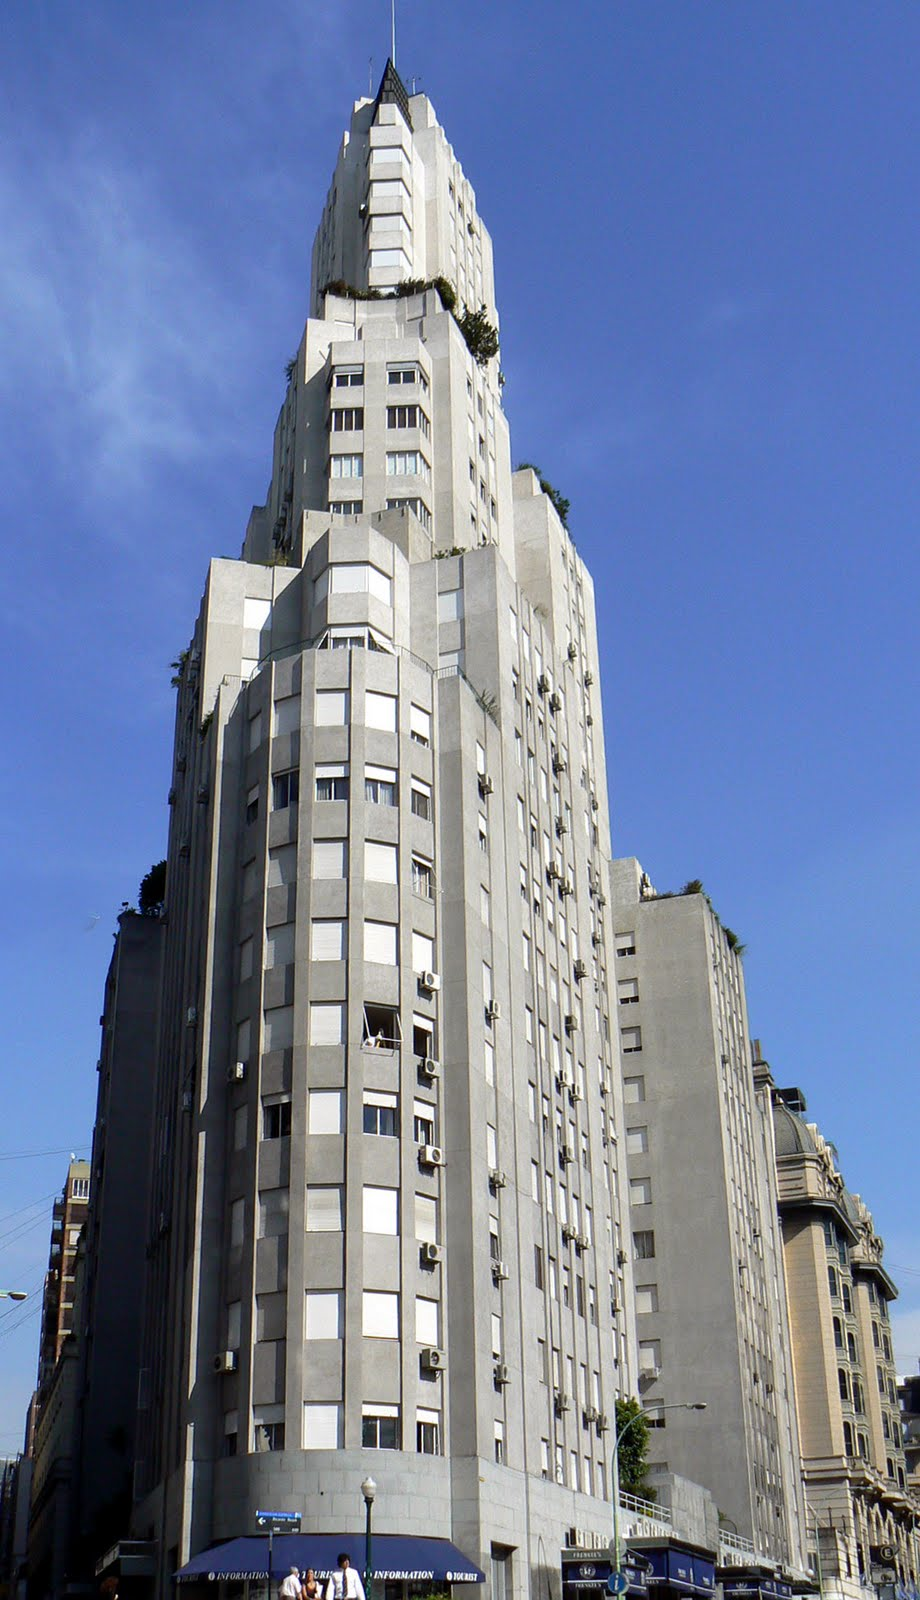 An englishman abroad art deco v art nouveau what 39 s the for Art deco hotel buenos aires